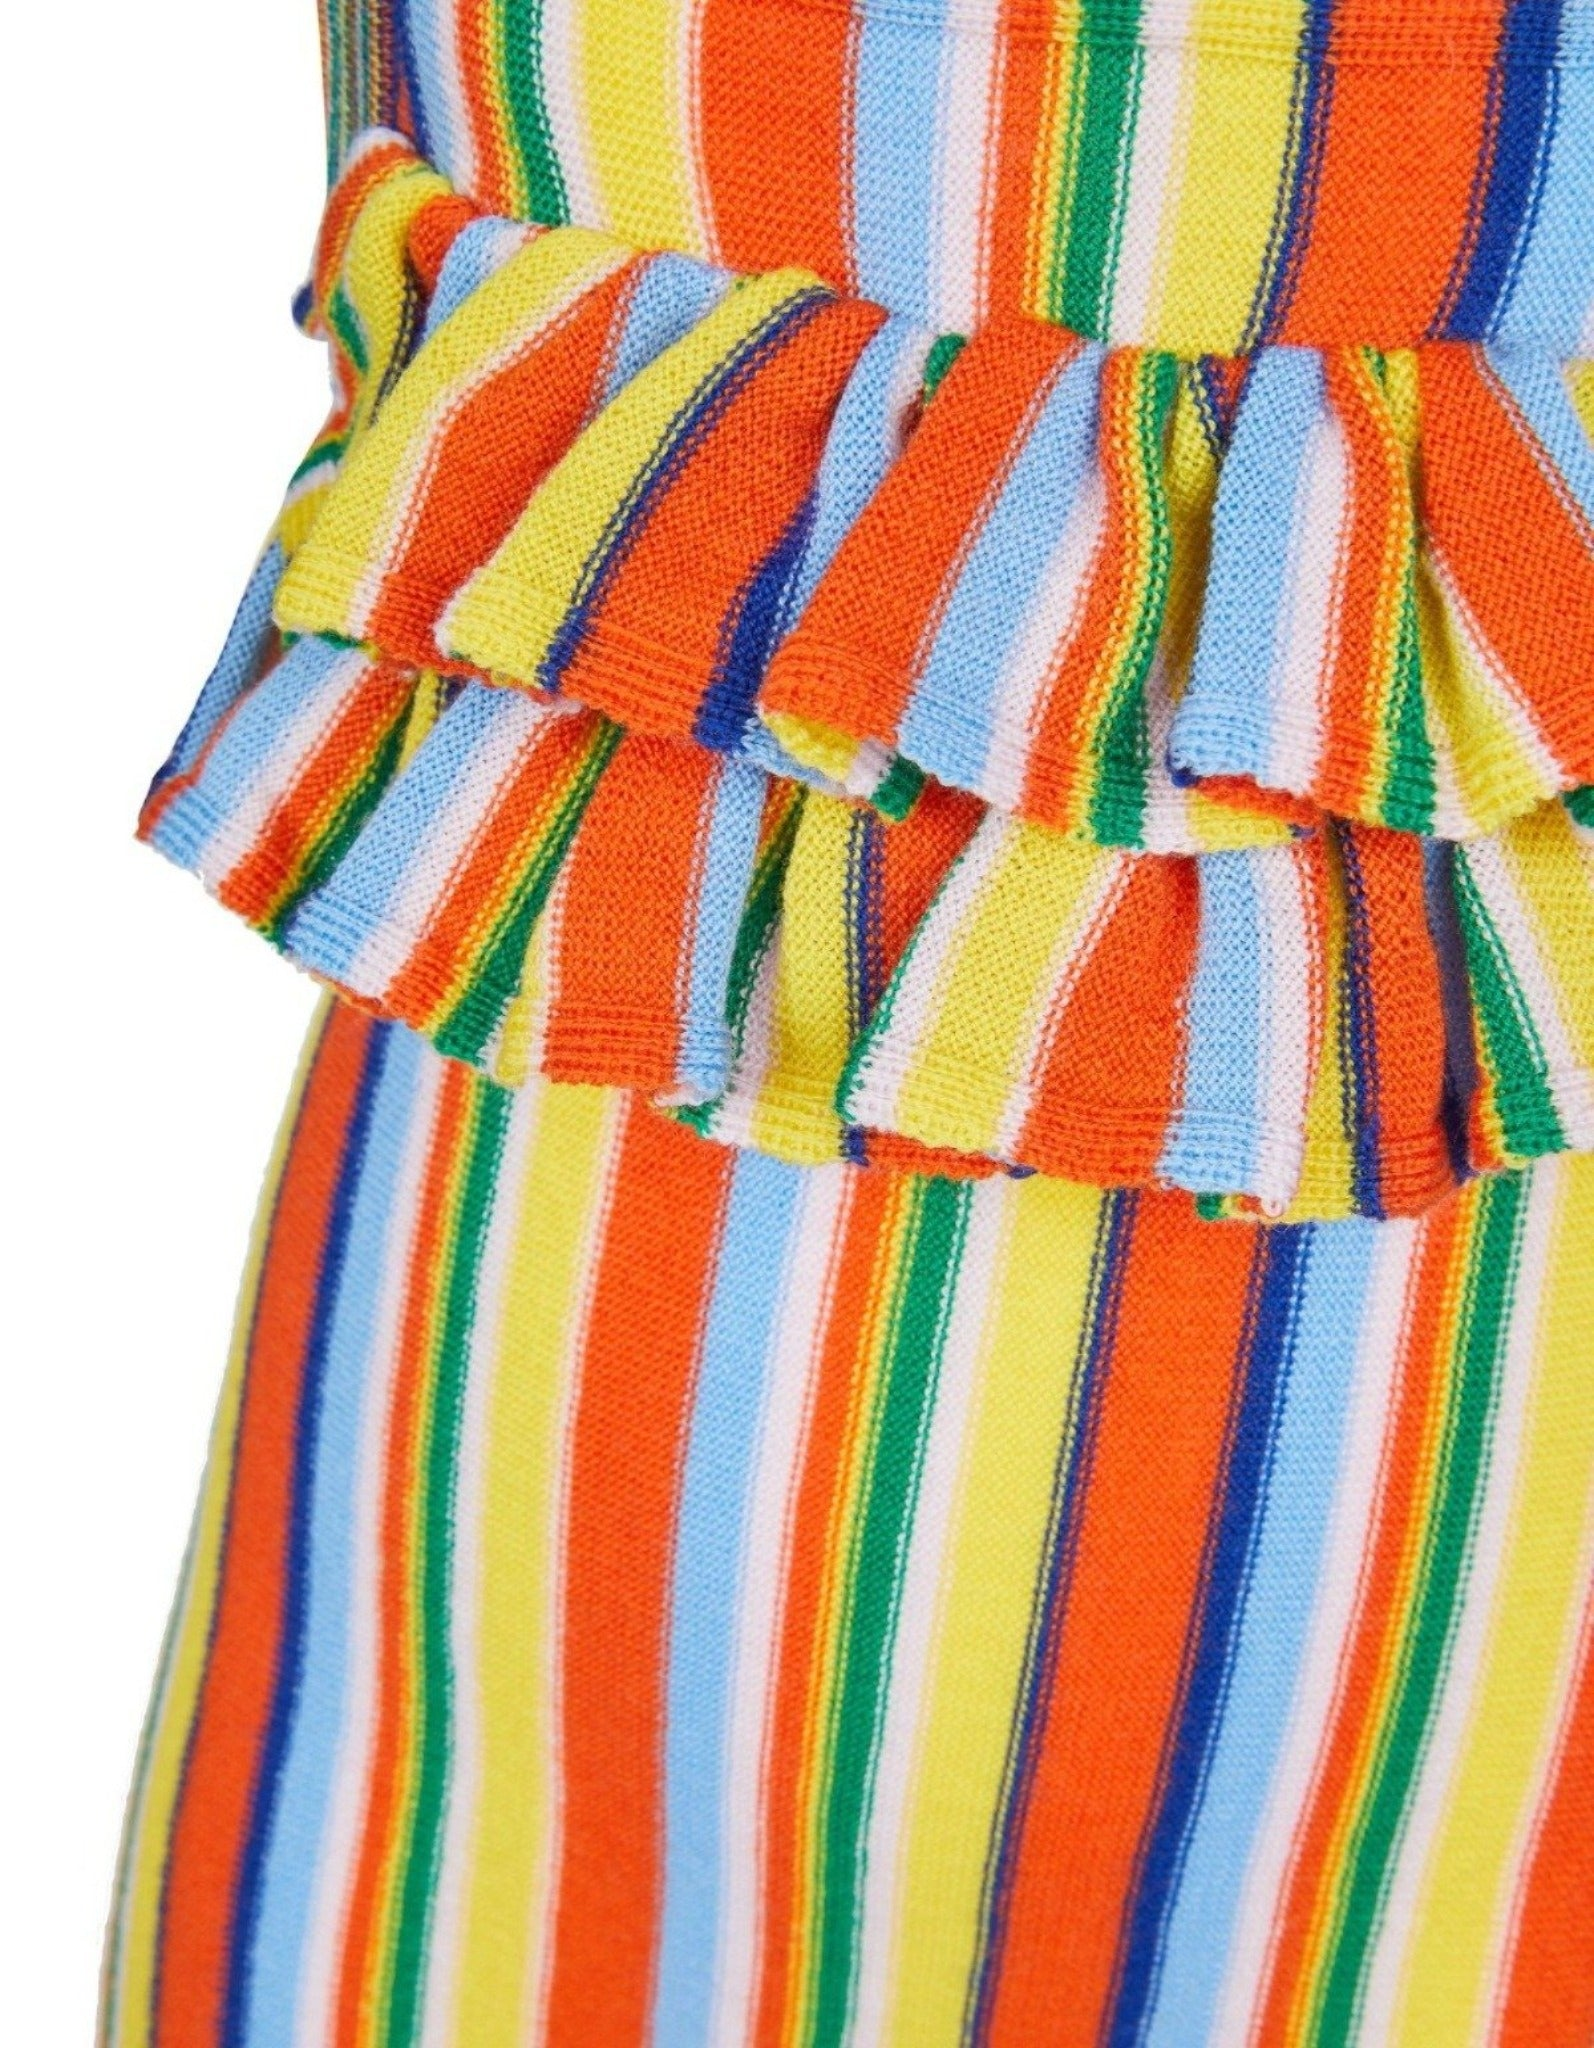 M'A KIDS JUMPSUIT IN MULTI STRIPES